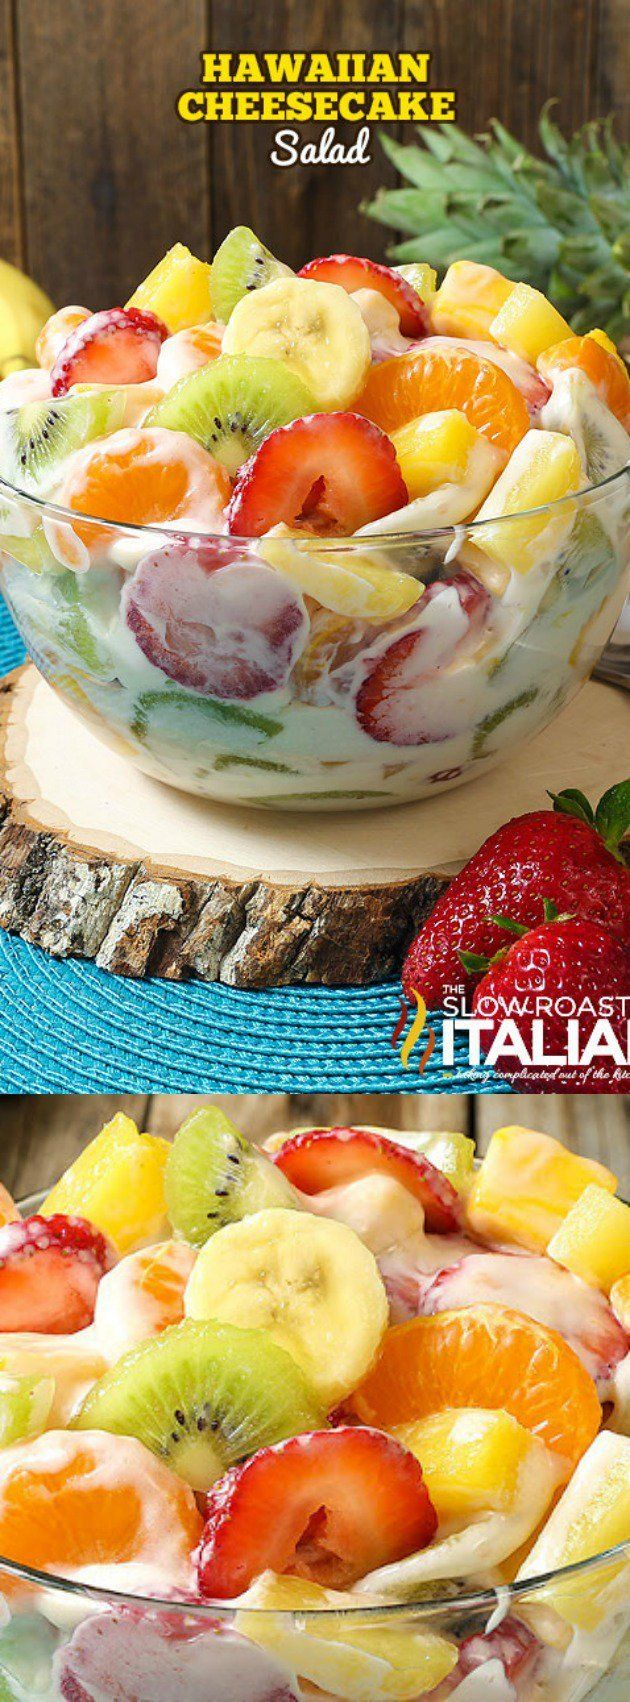 This Hawaiian Cheesecake Salad from The Slow Roasted Italian is bursting with flavor! Fresh tropical fruit and a rich and creamy cheesecake filling create the most glorious fruit salad ever!